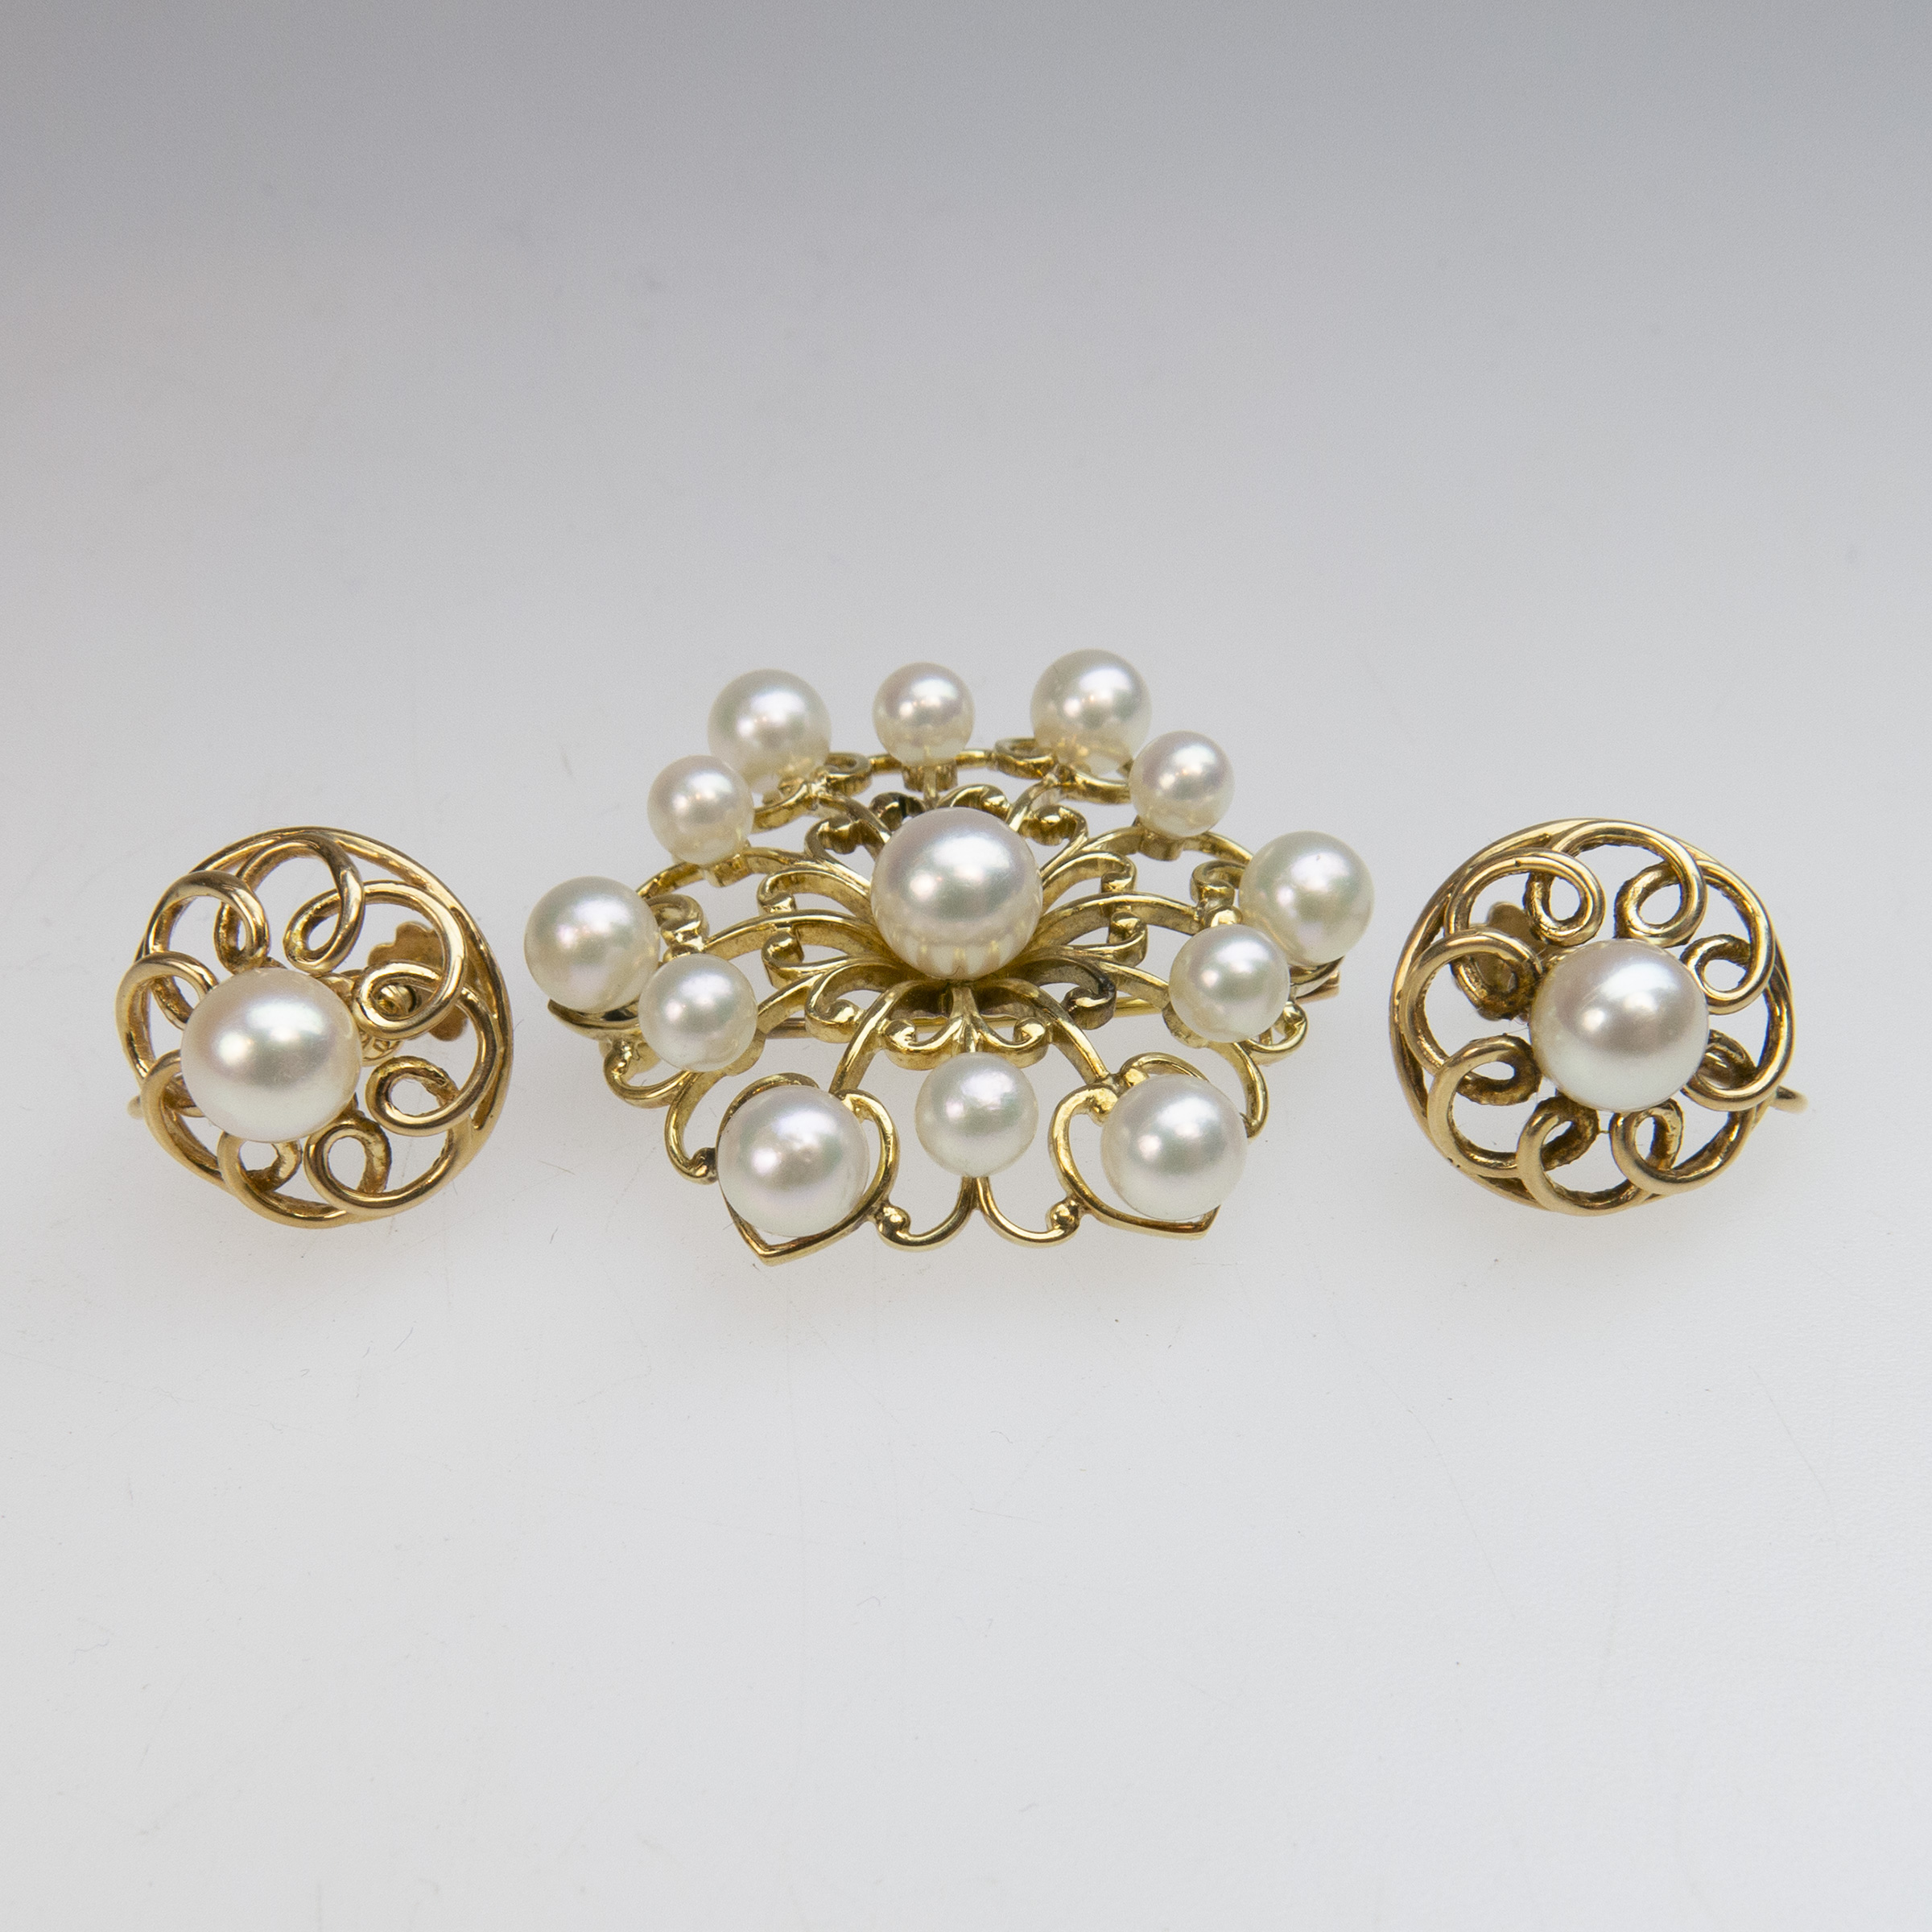 Birks 14k Yellow Gold Brooch And Screw-Back Earrings